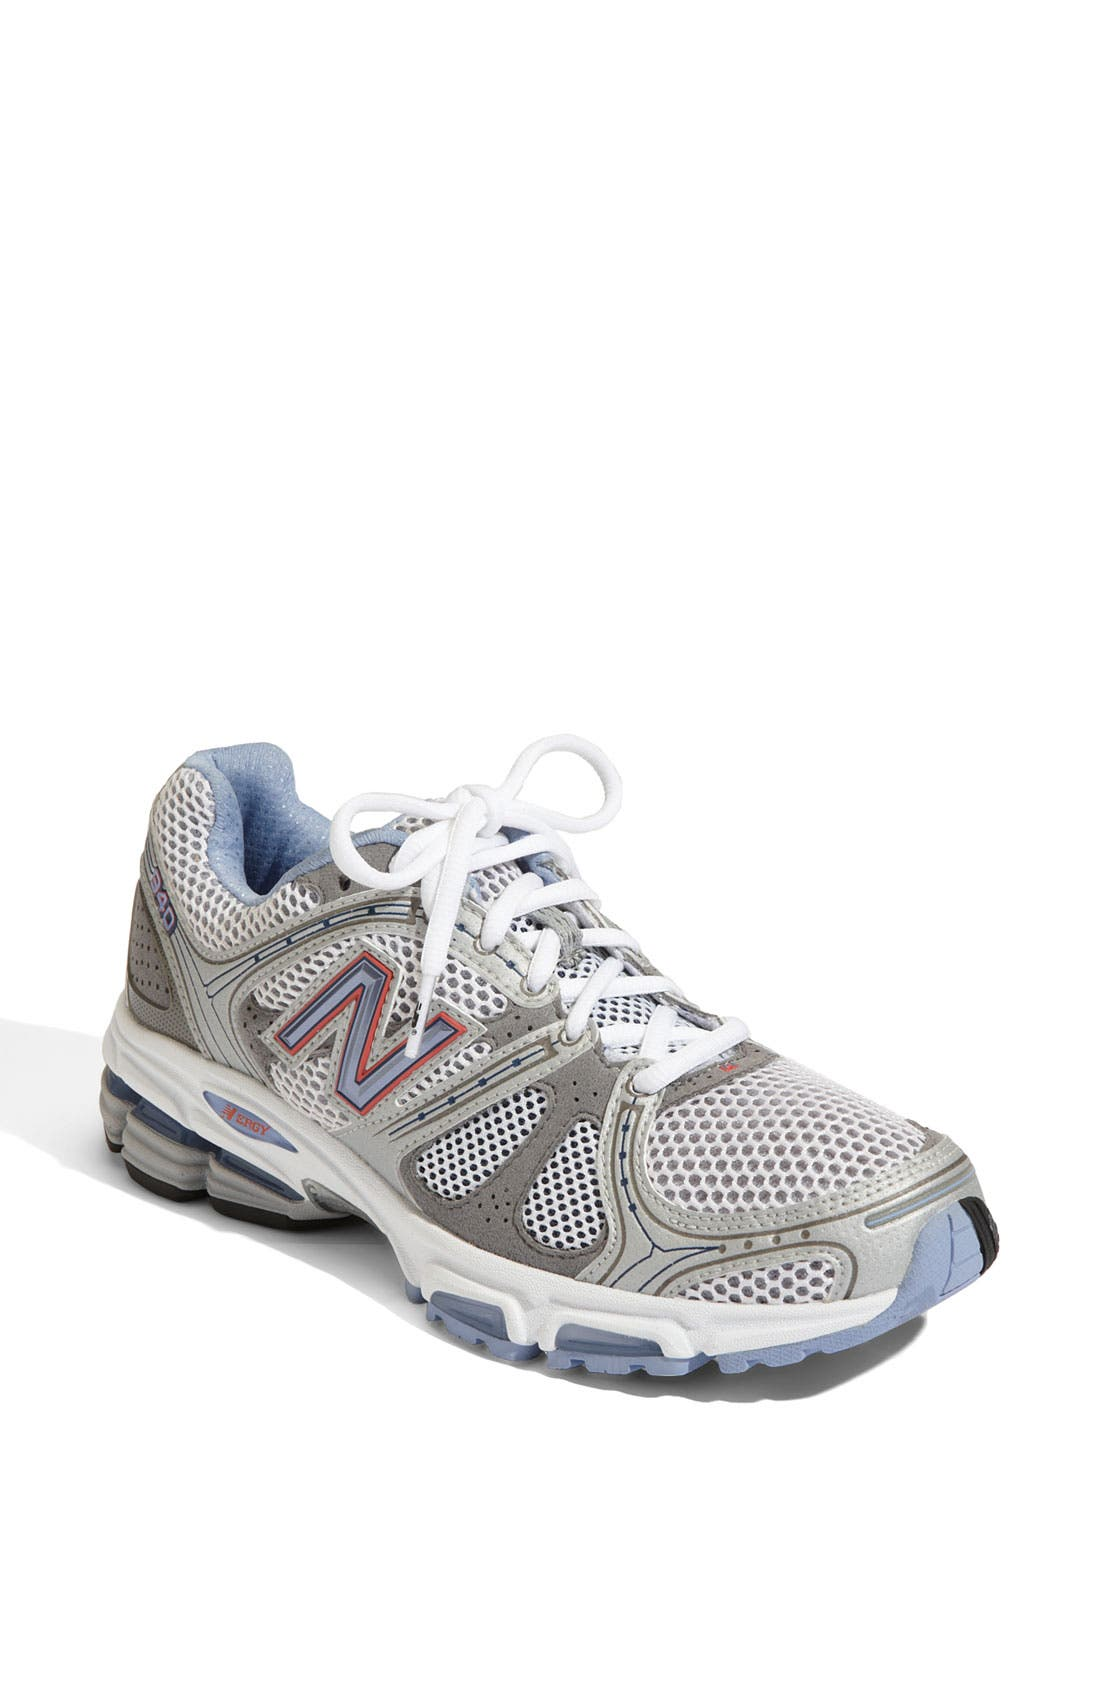 Alternate Image 1 Selected - New Balance '940' Running Shoe (Women)